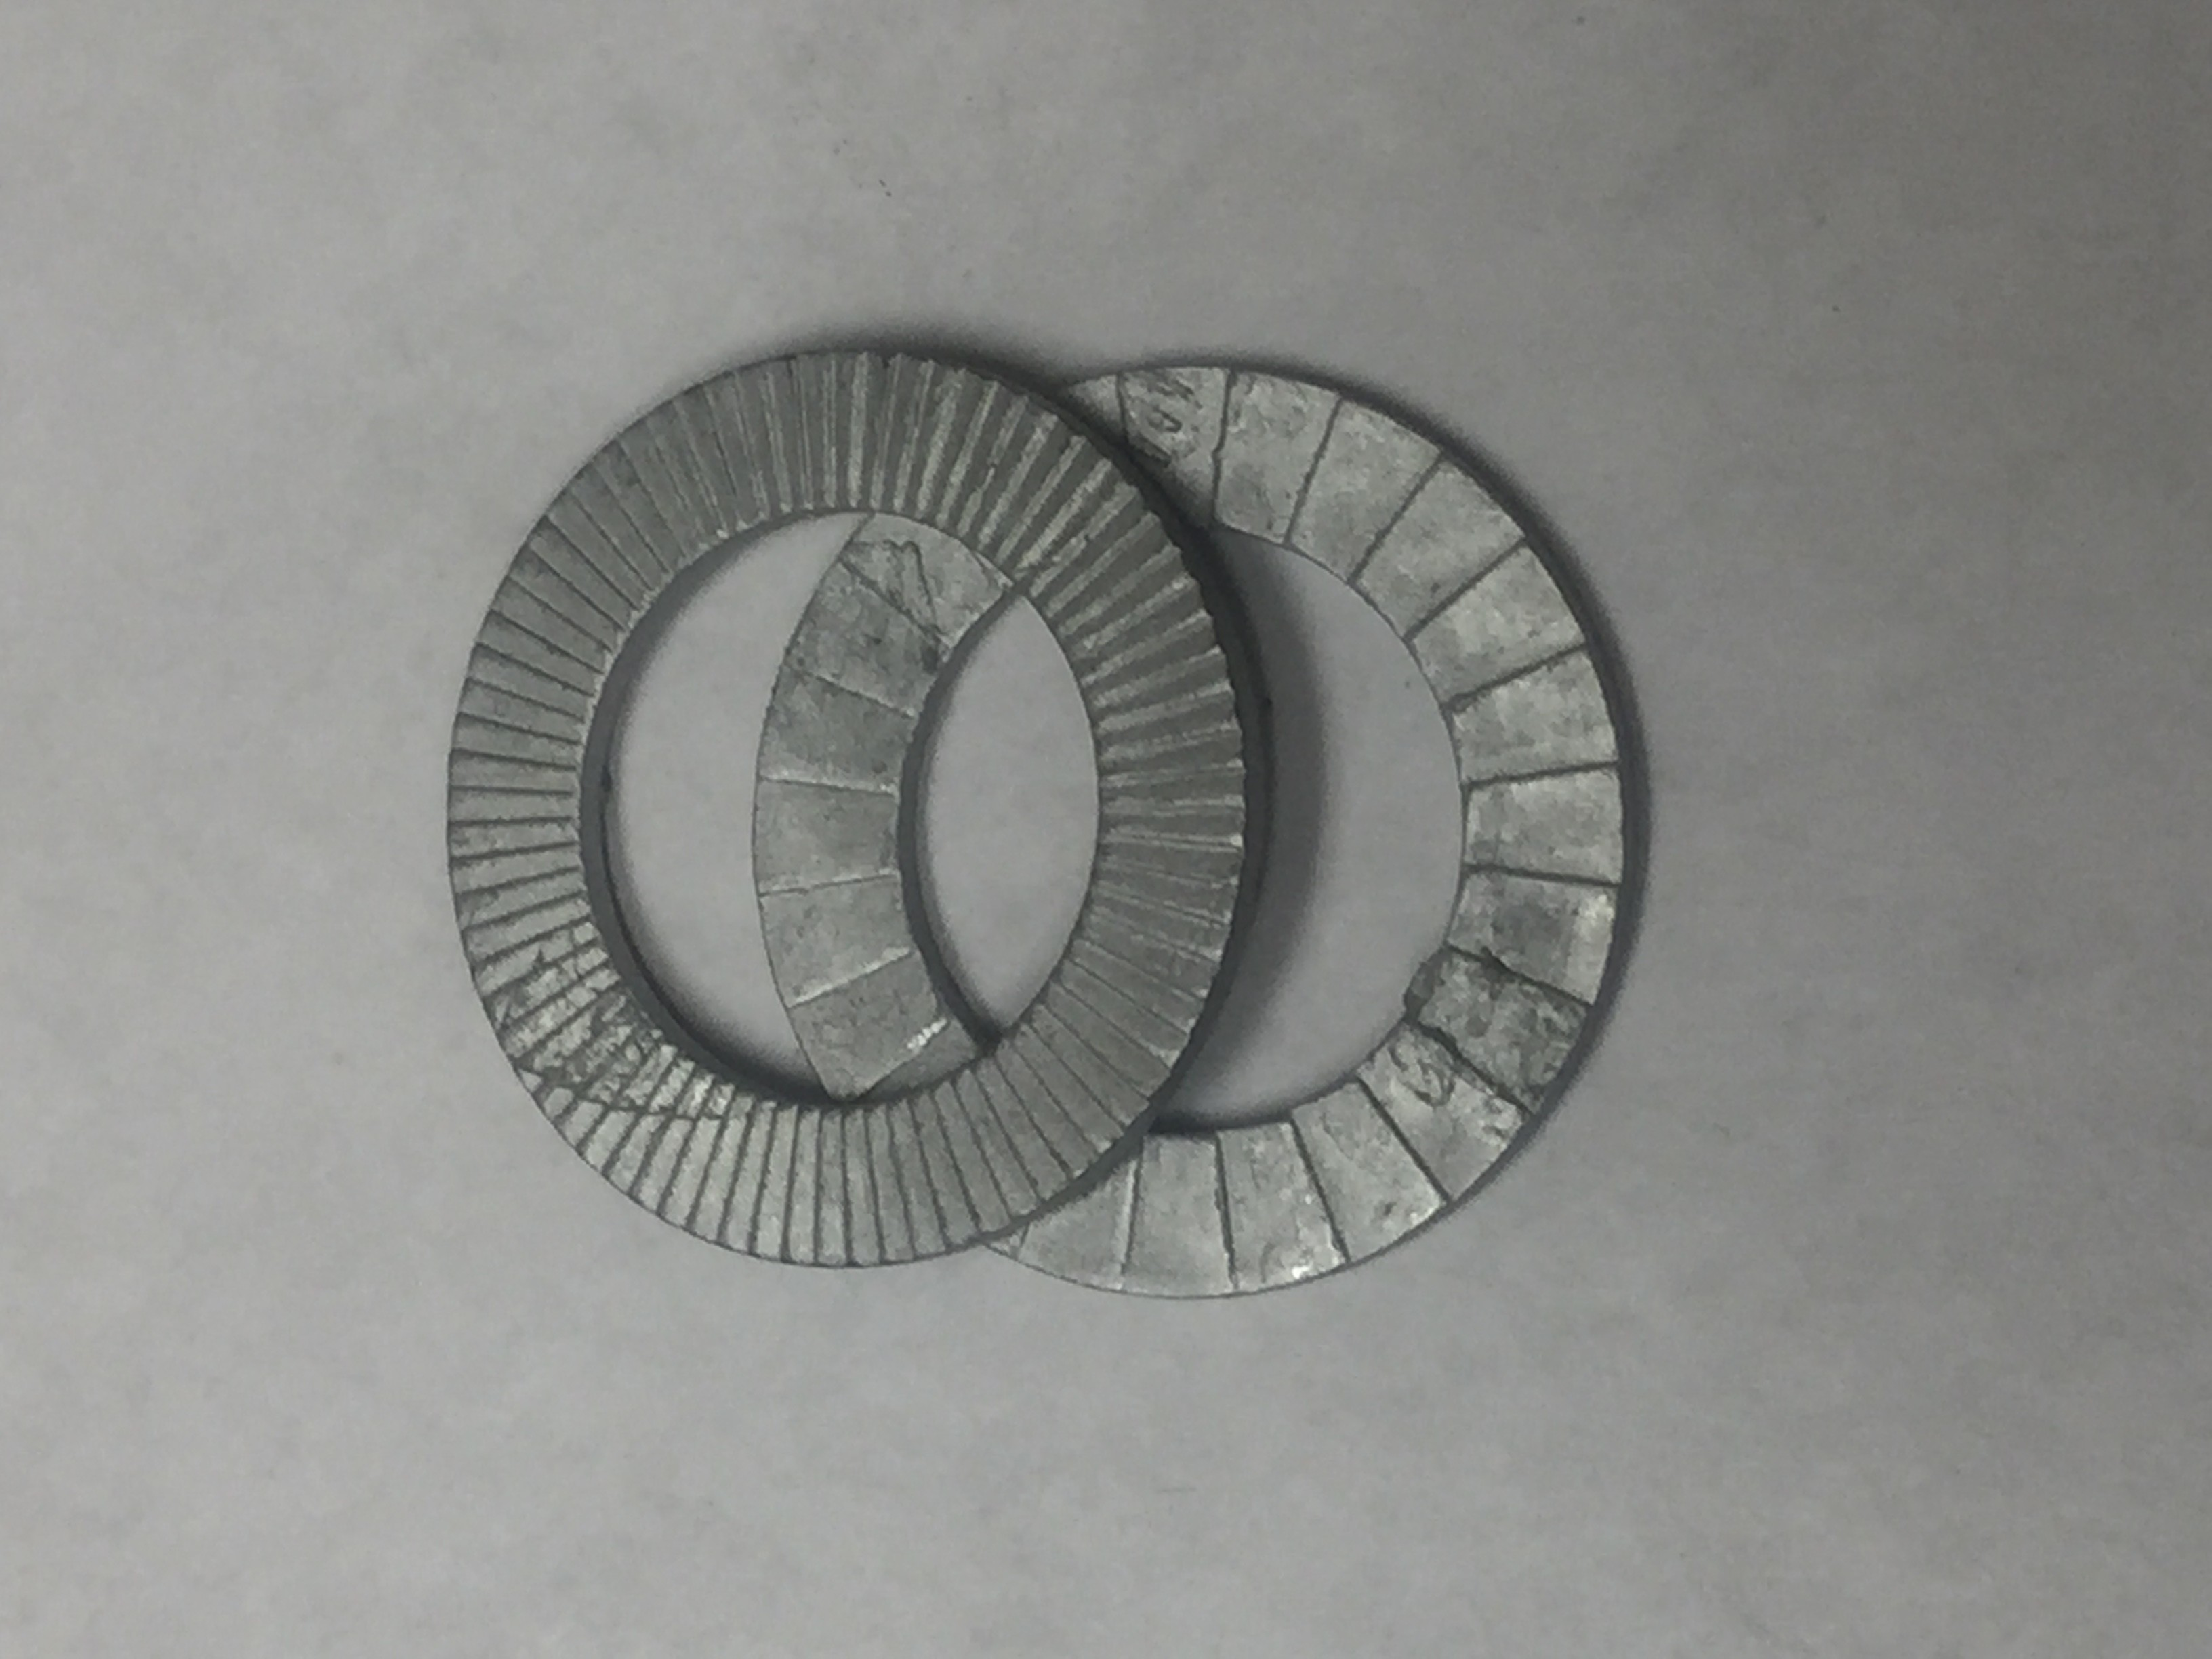 5/16 ZINC PLATED NORD-LOCK WASHER